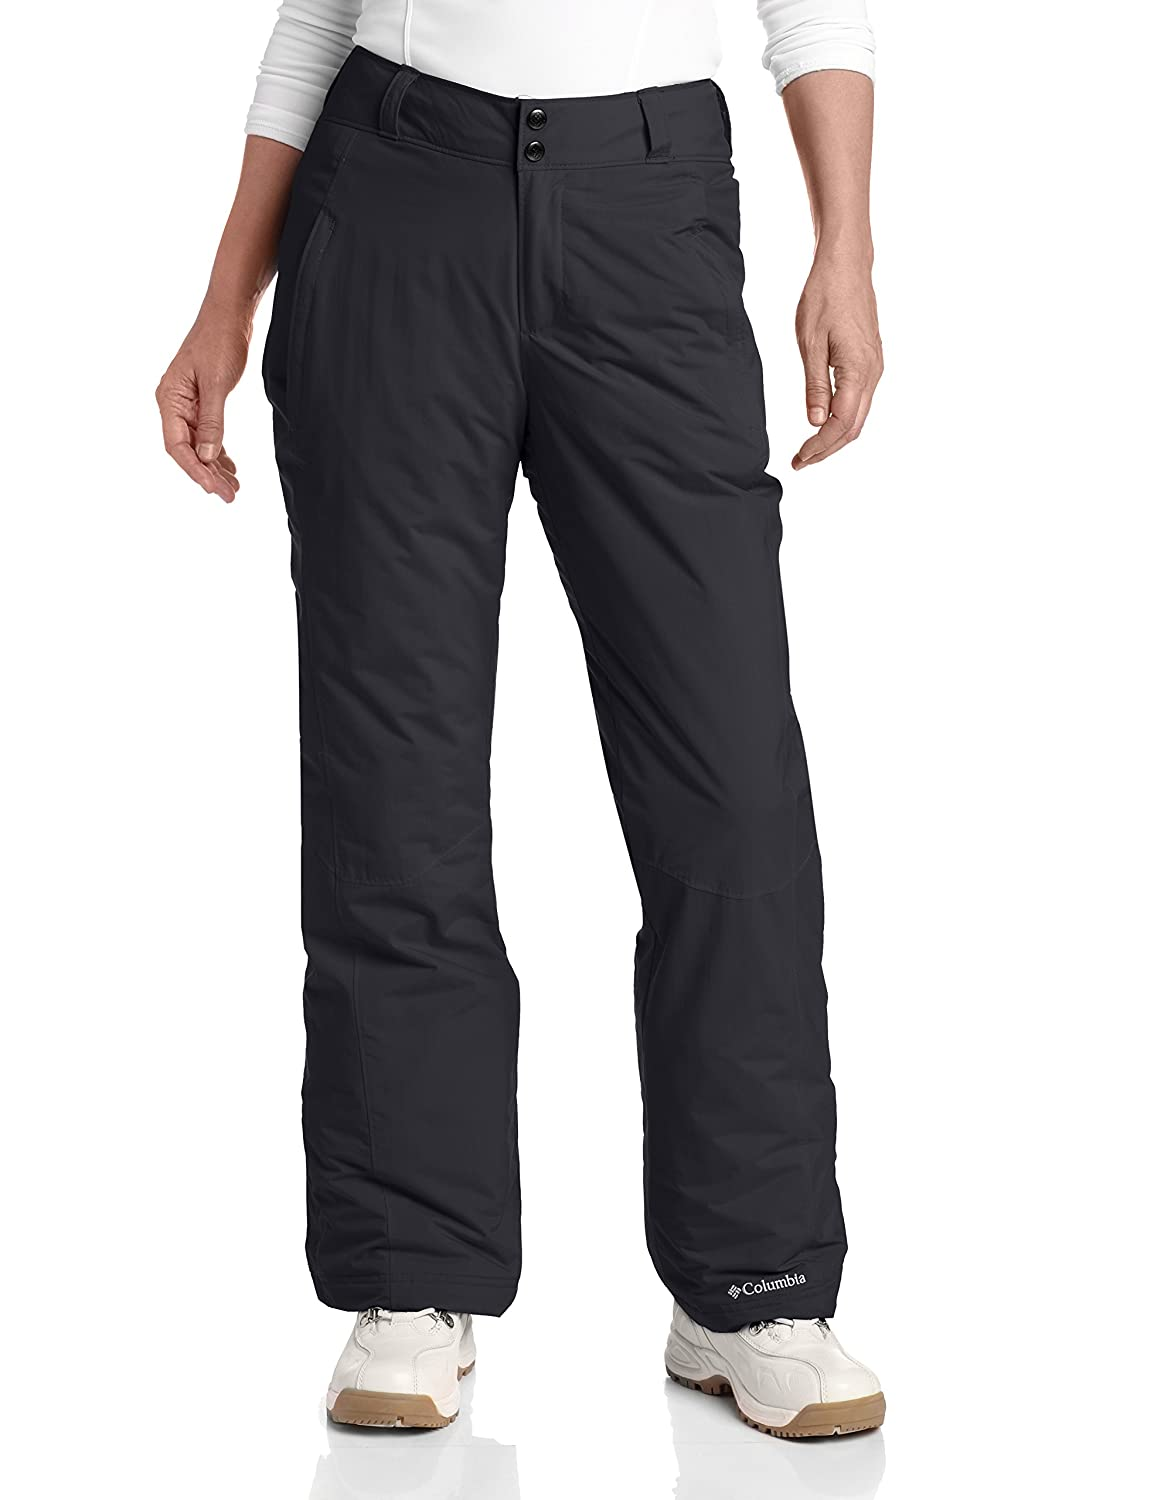 Columbia Women's Modern Mountain 2.0 Pant at Amazon Women's Clothing store:  Athletic Sweatpants